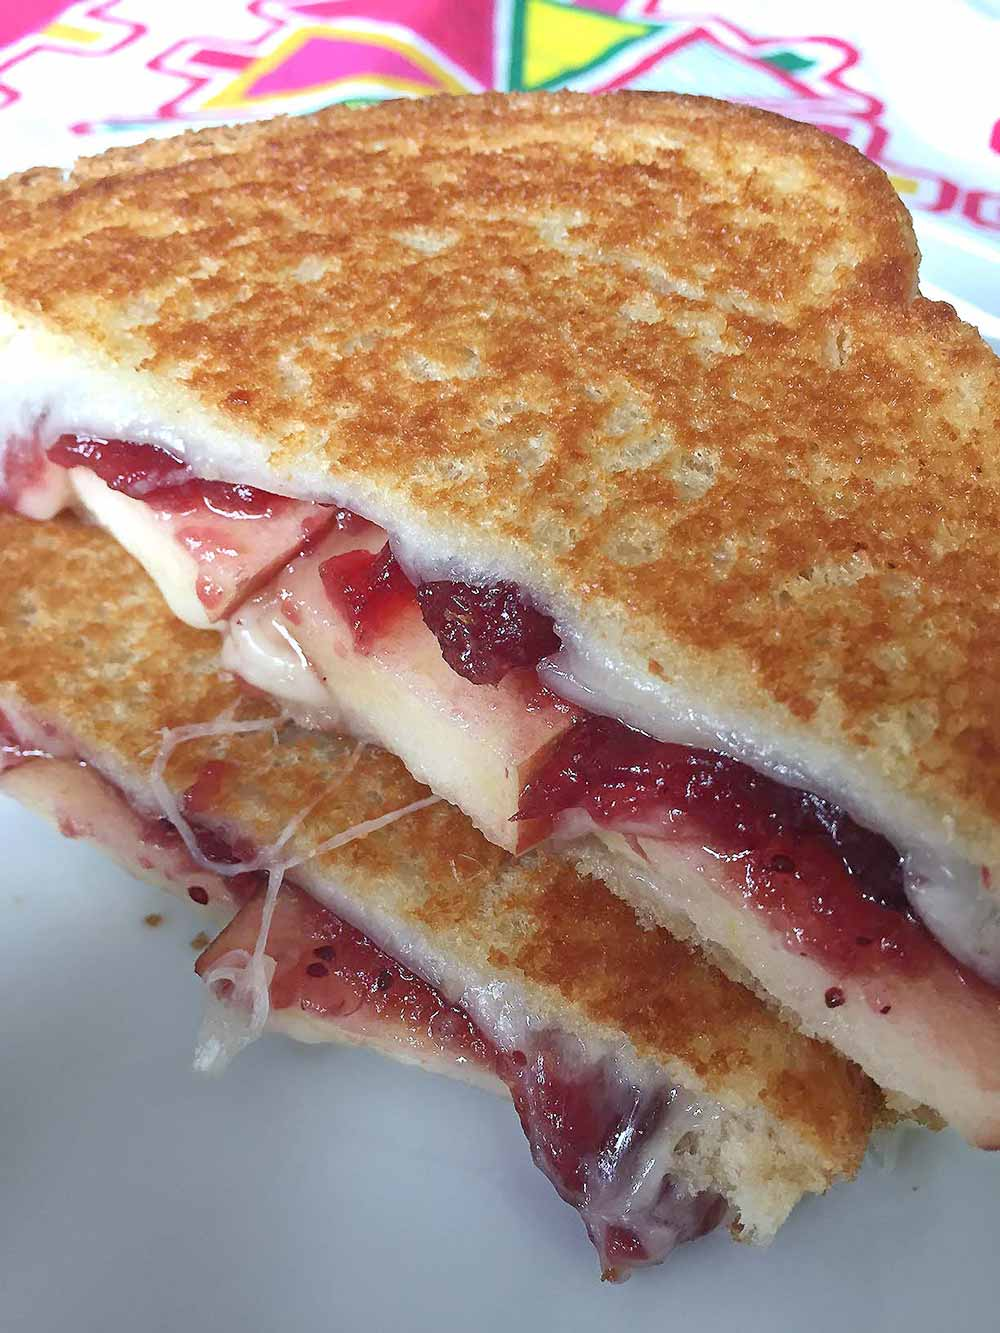 21 Mind-Blowing Grilled Cheese Sandwich Recipes: Apple Cranberry Grilled Cheese Sandwich Recipe